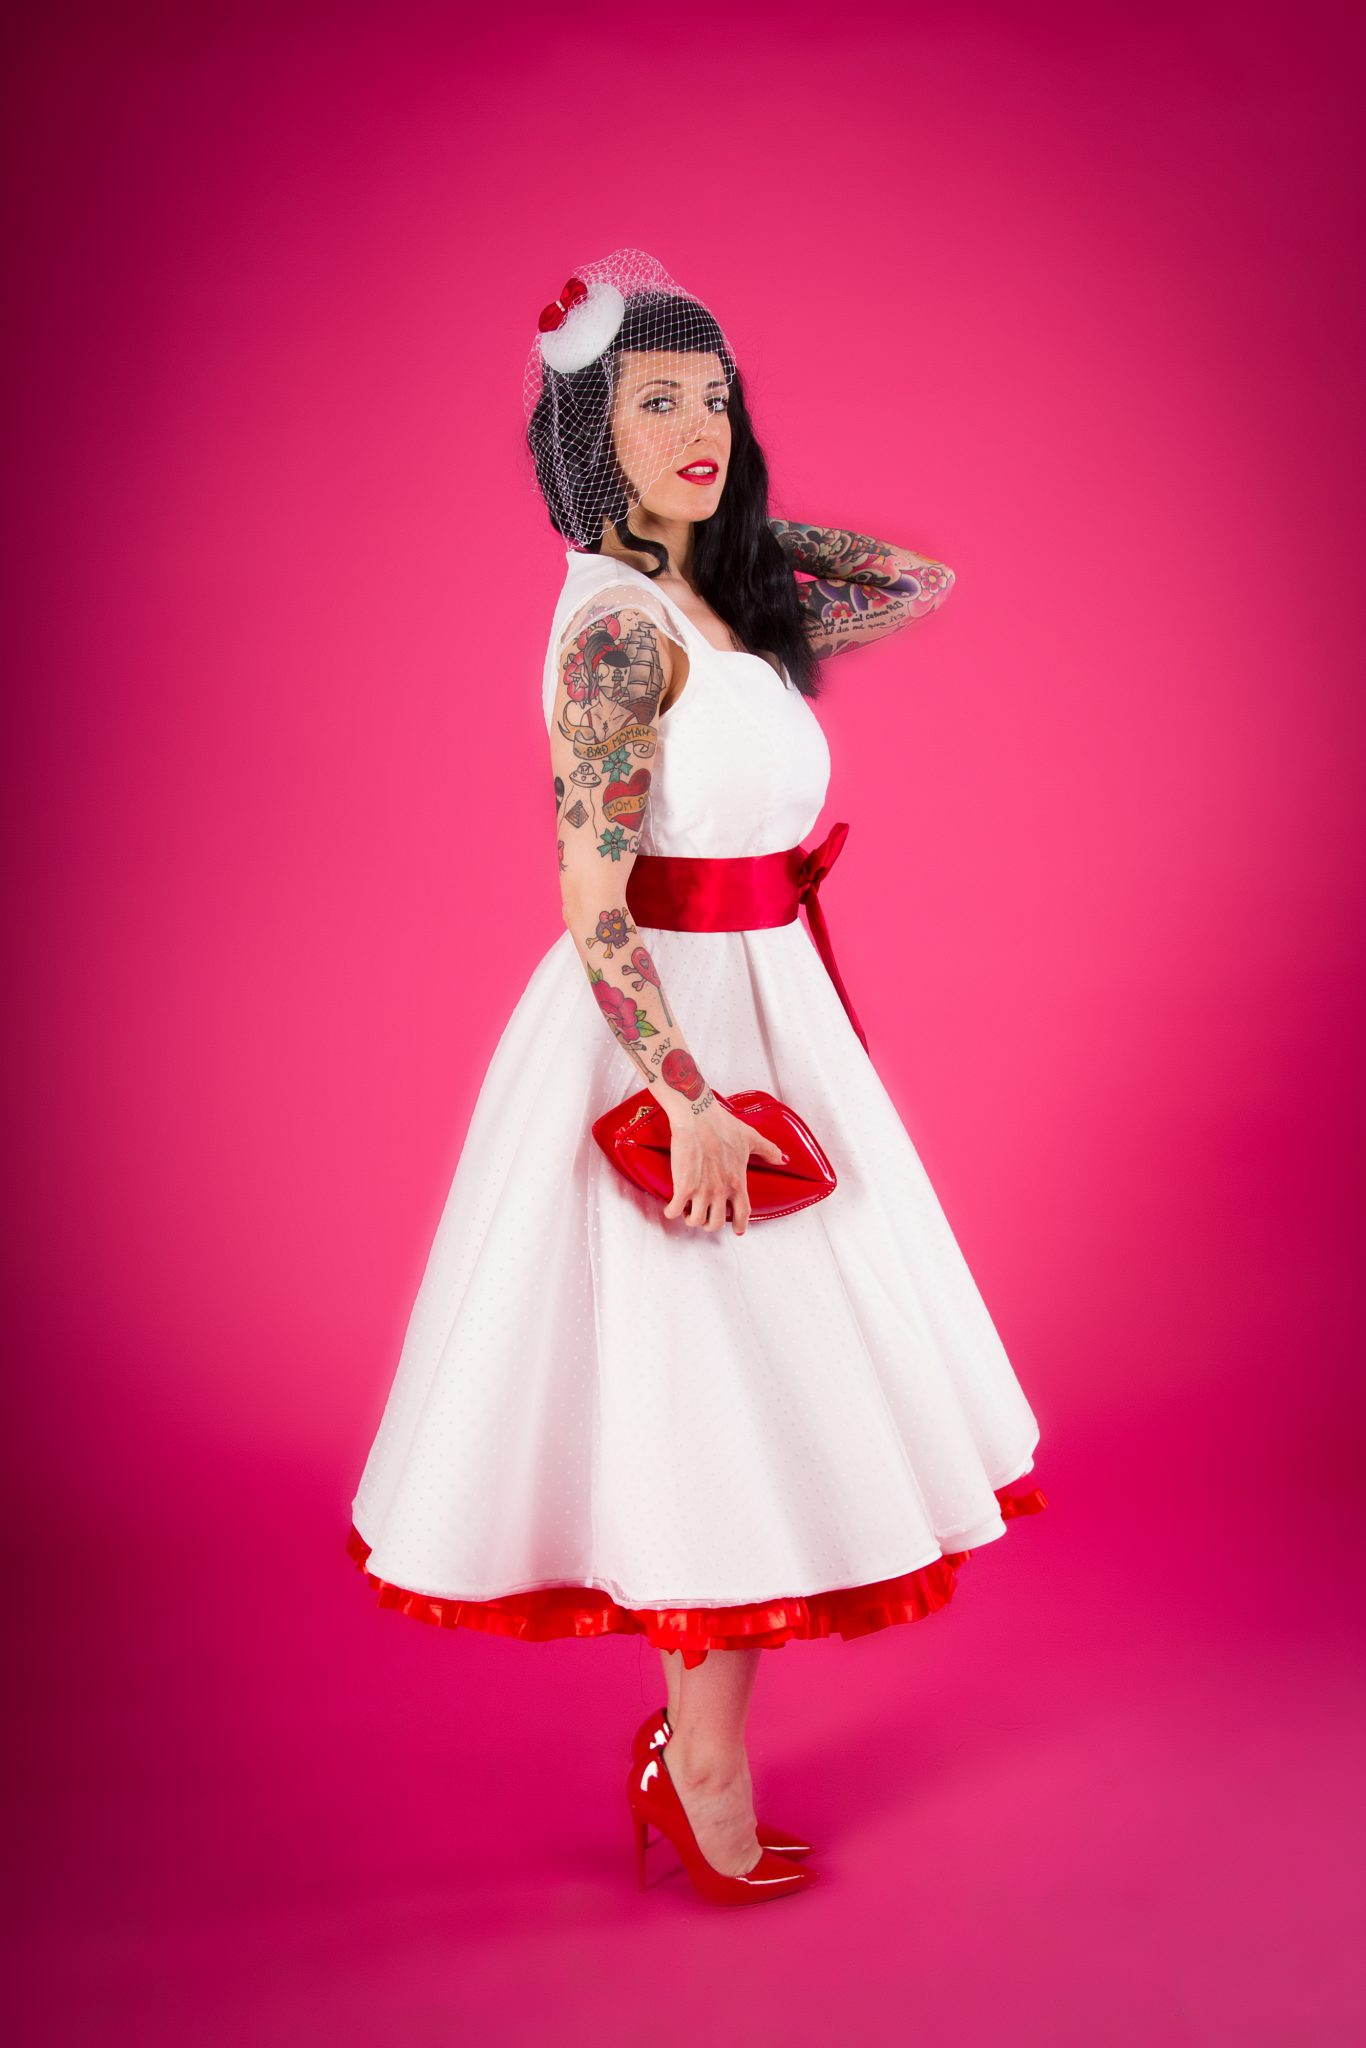 Contemporáneo Pin Up Vestidos De Novia Inspirados Componente - Ideas ...